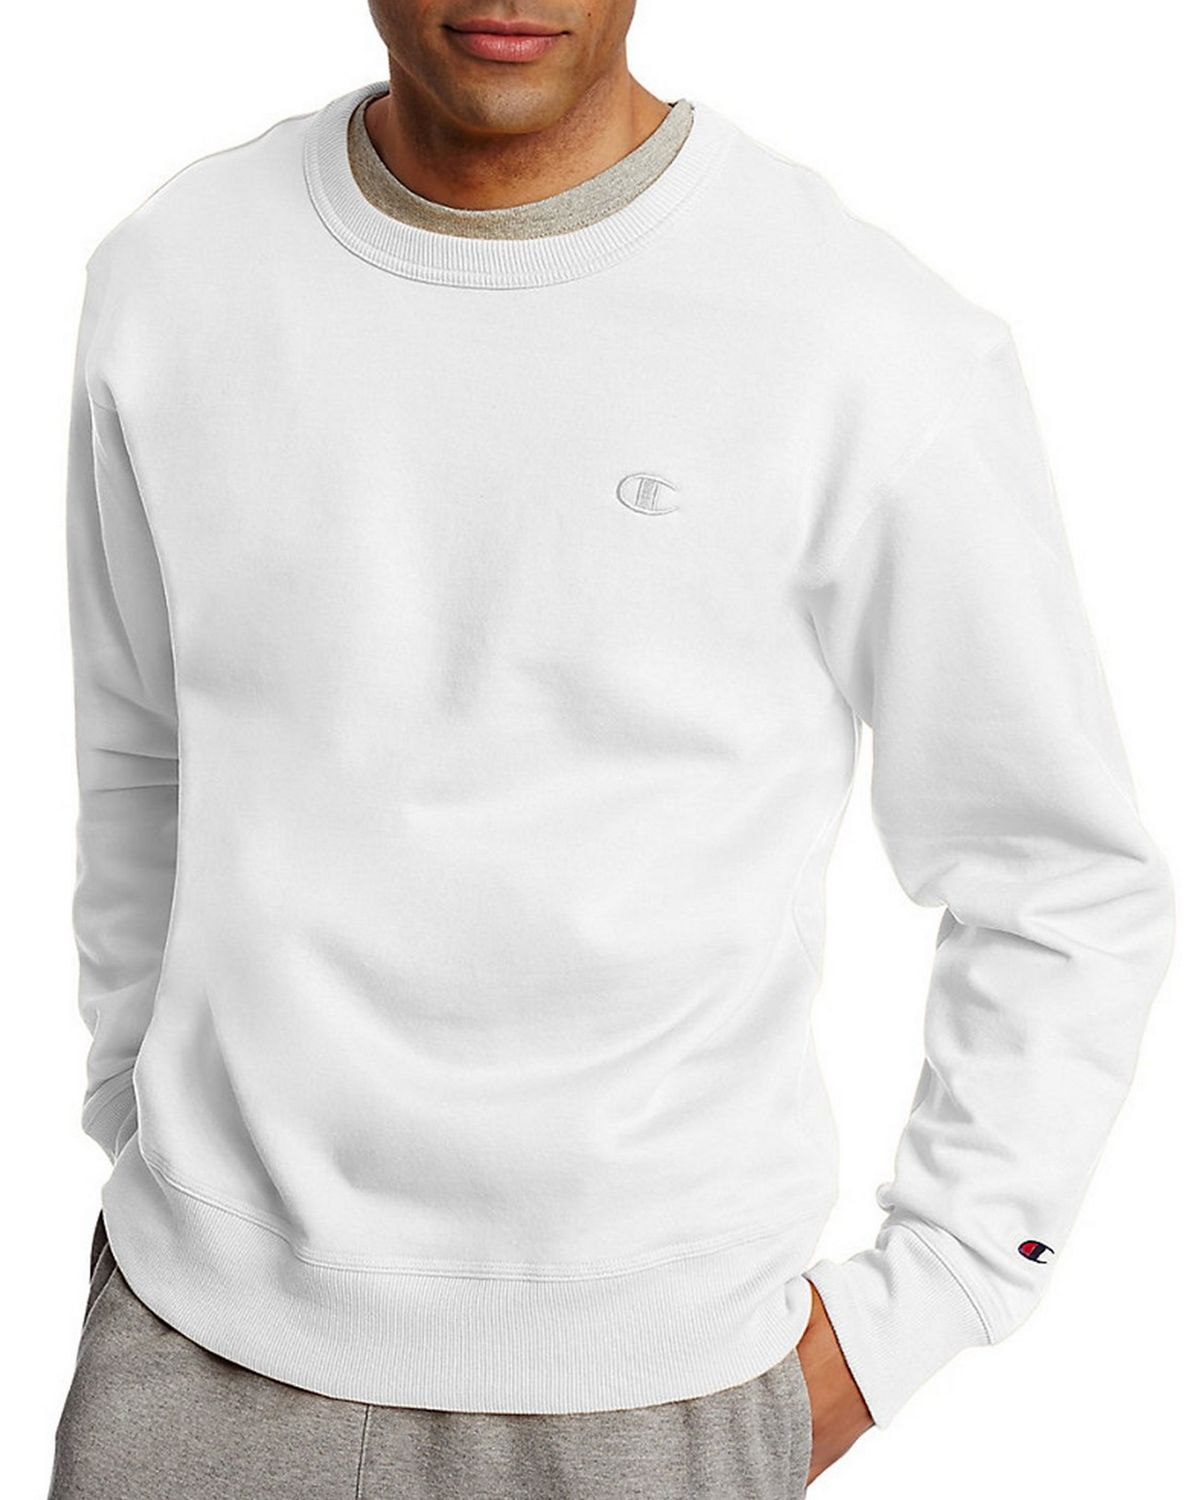 Champion Men's Powerblend Pullover Sweatshirt, Oxford Grey, Large S0888